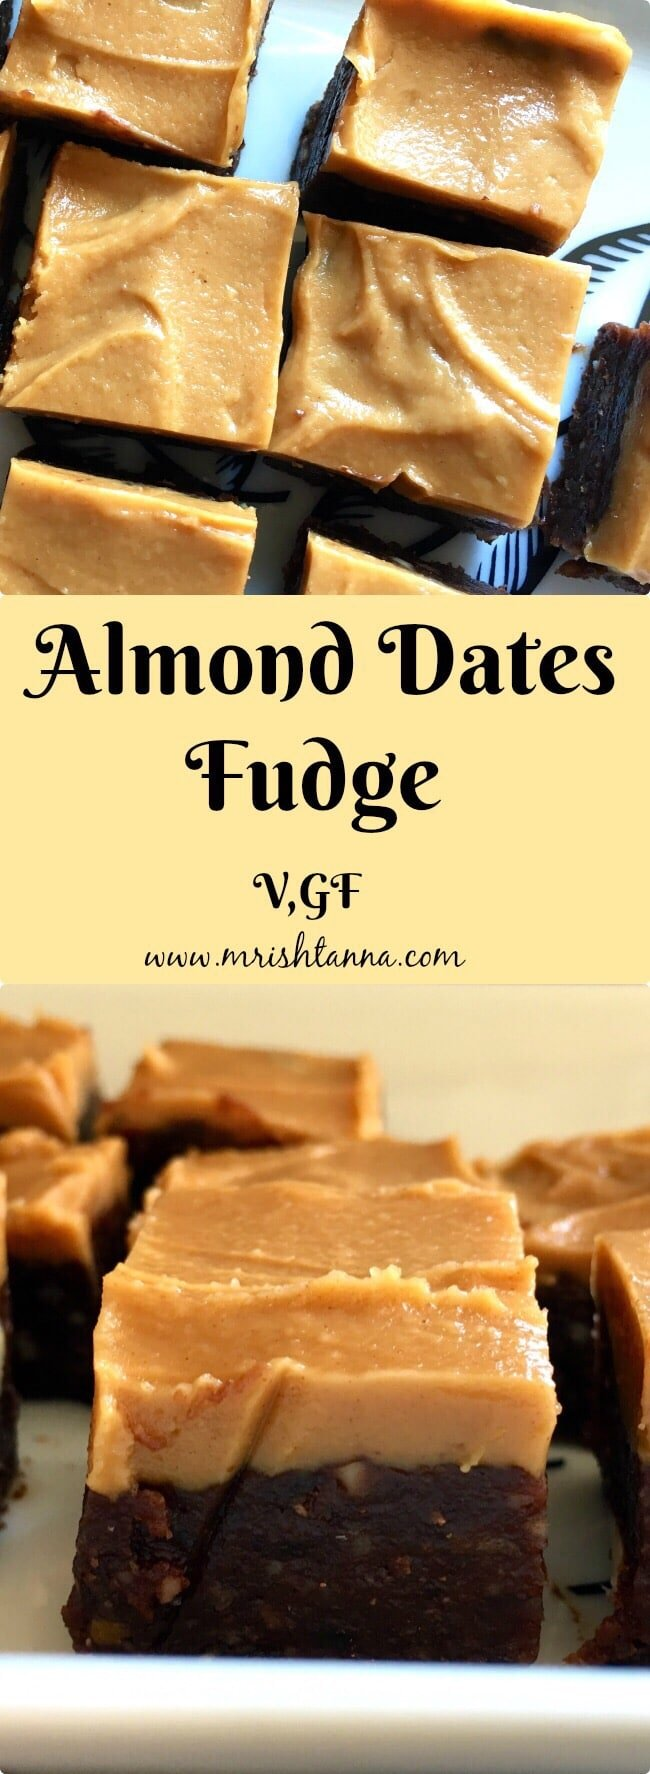 A piece of almond fudge on the plate